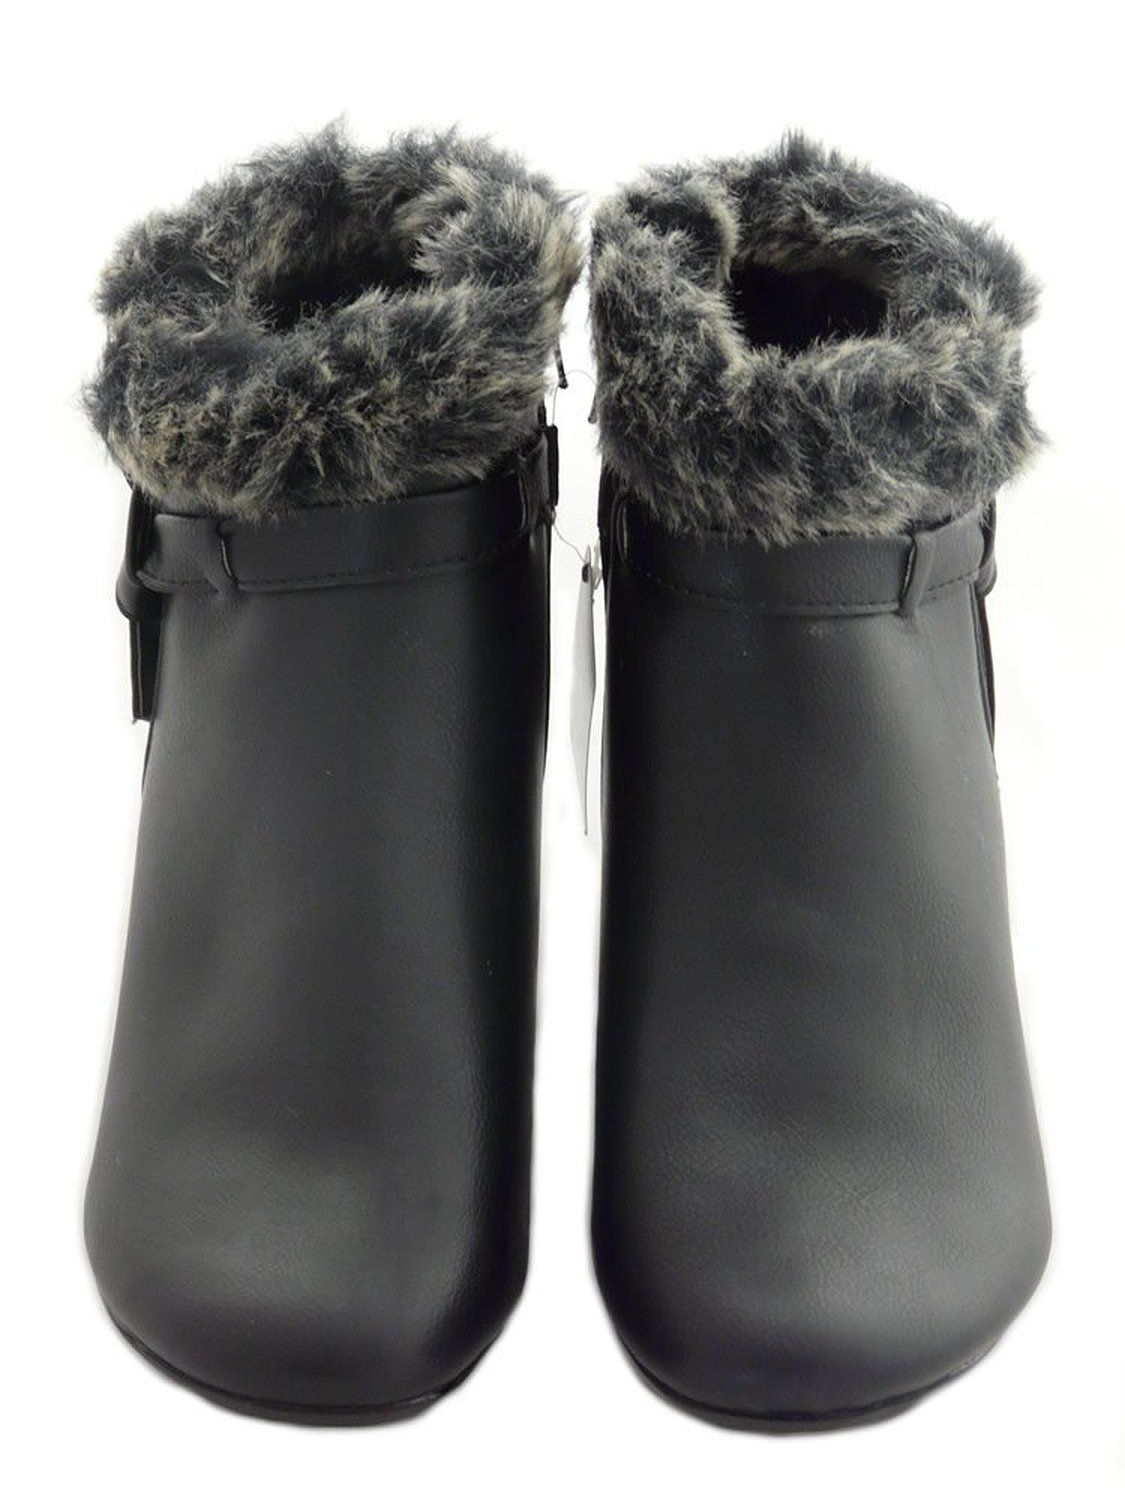 71c68803c5b01 Cushion Walk Women's Faux Leather Ankle Boots with Fur Collar and ...